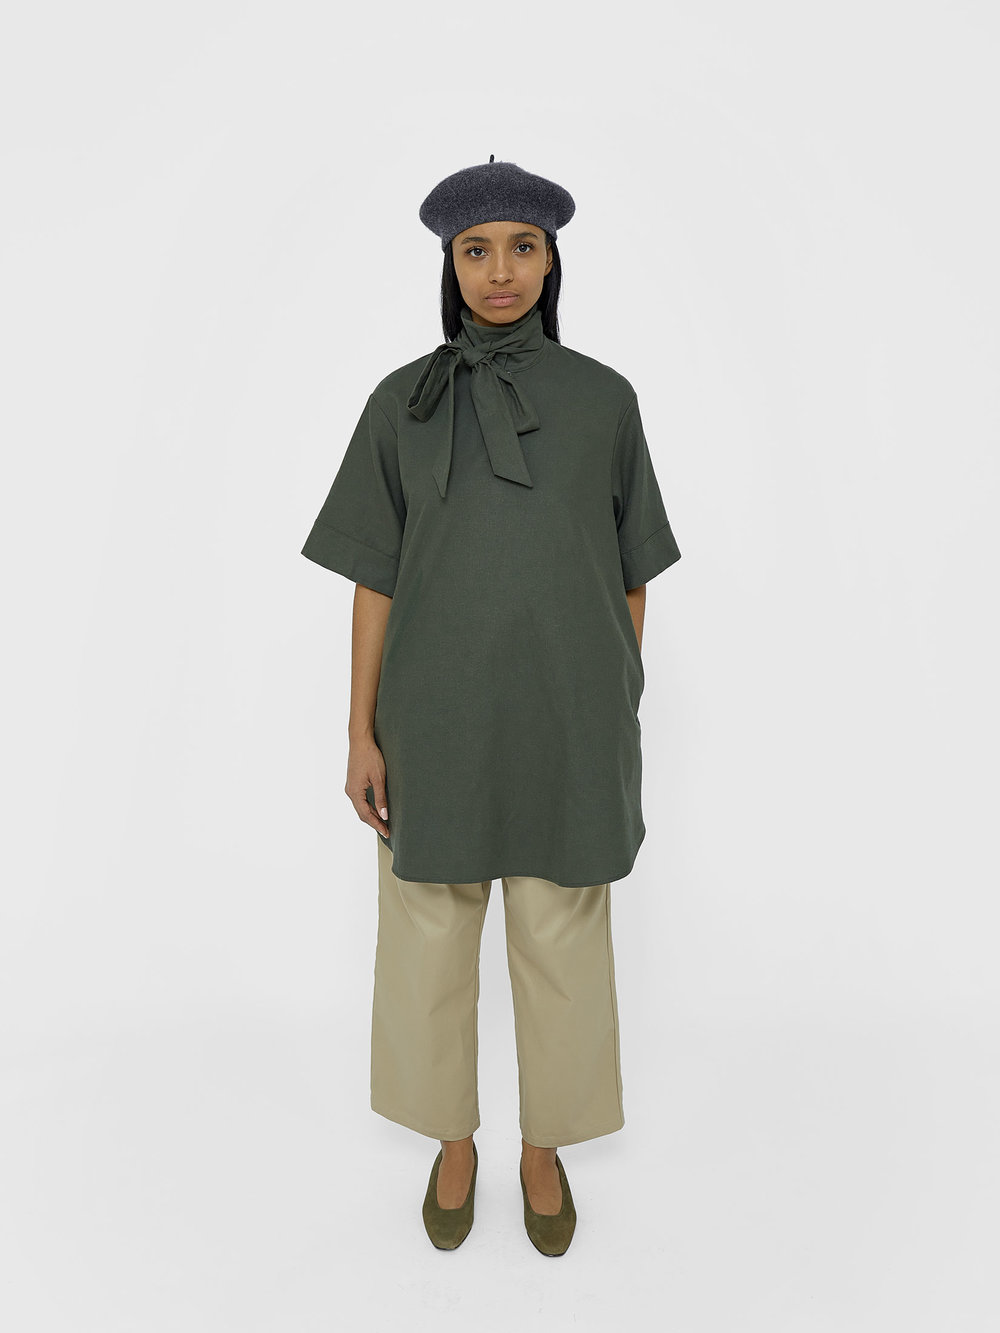 tunic-unisex-olive-kirsten-one-dna-01.jpg